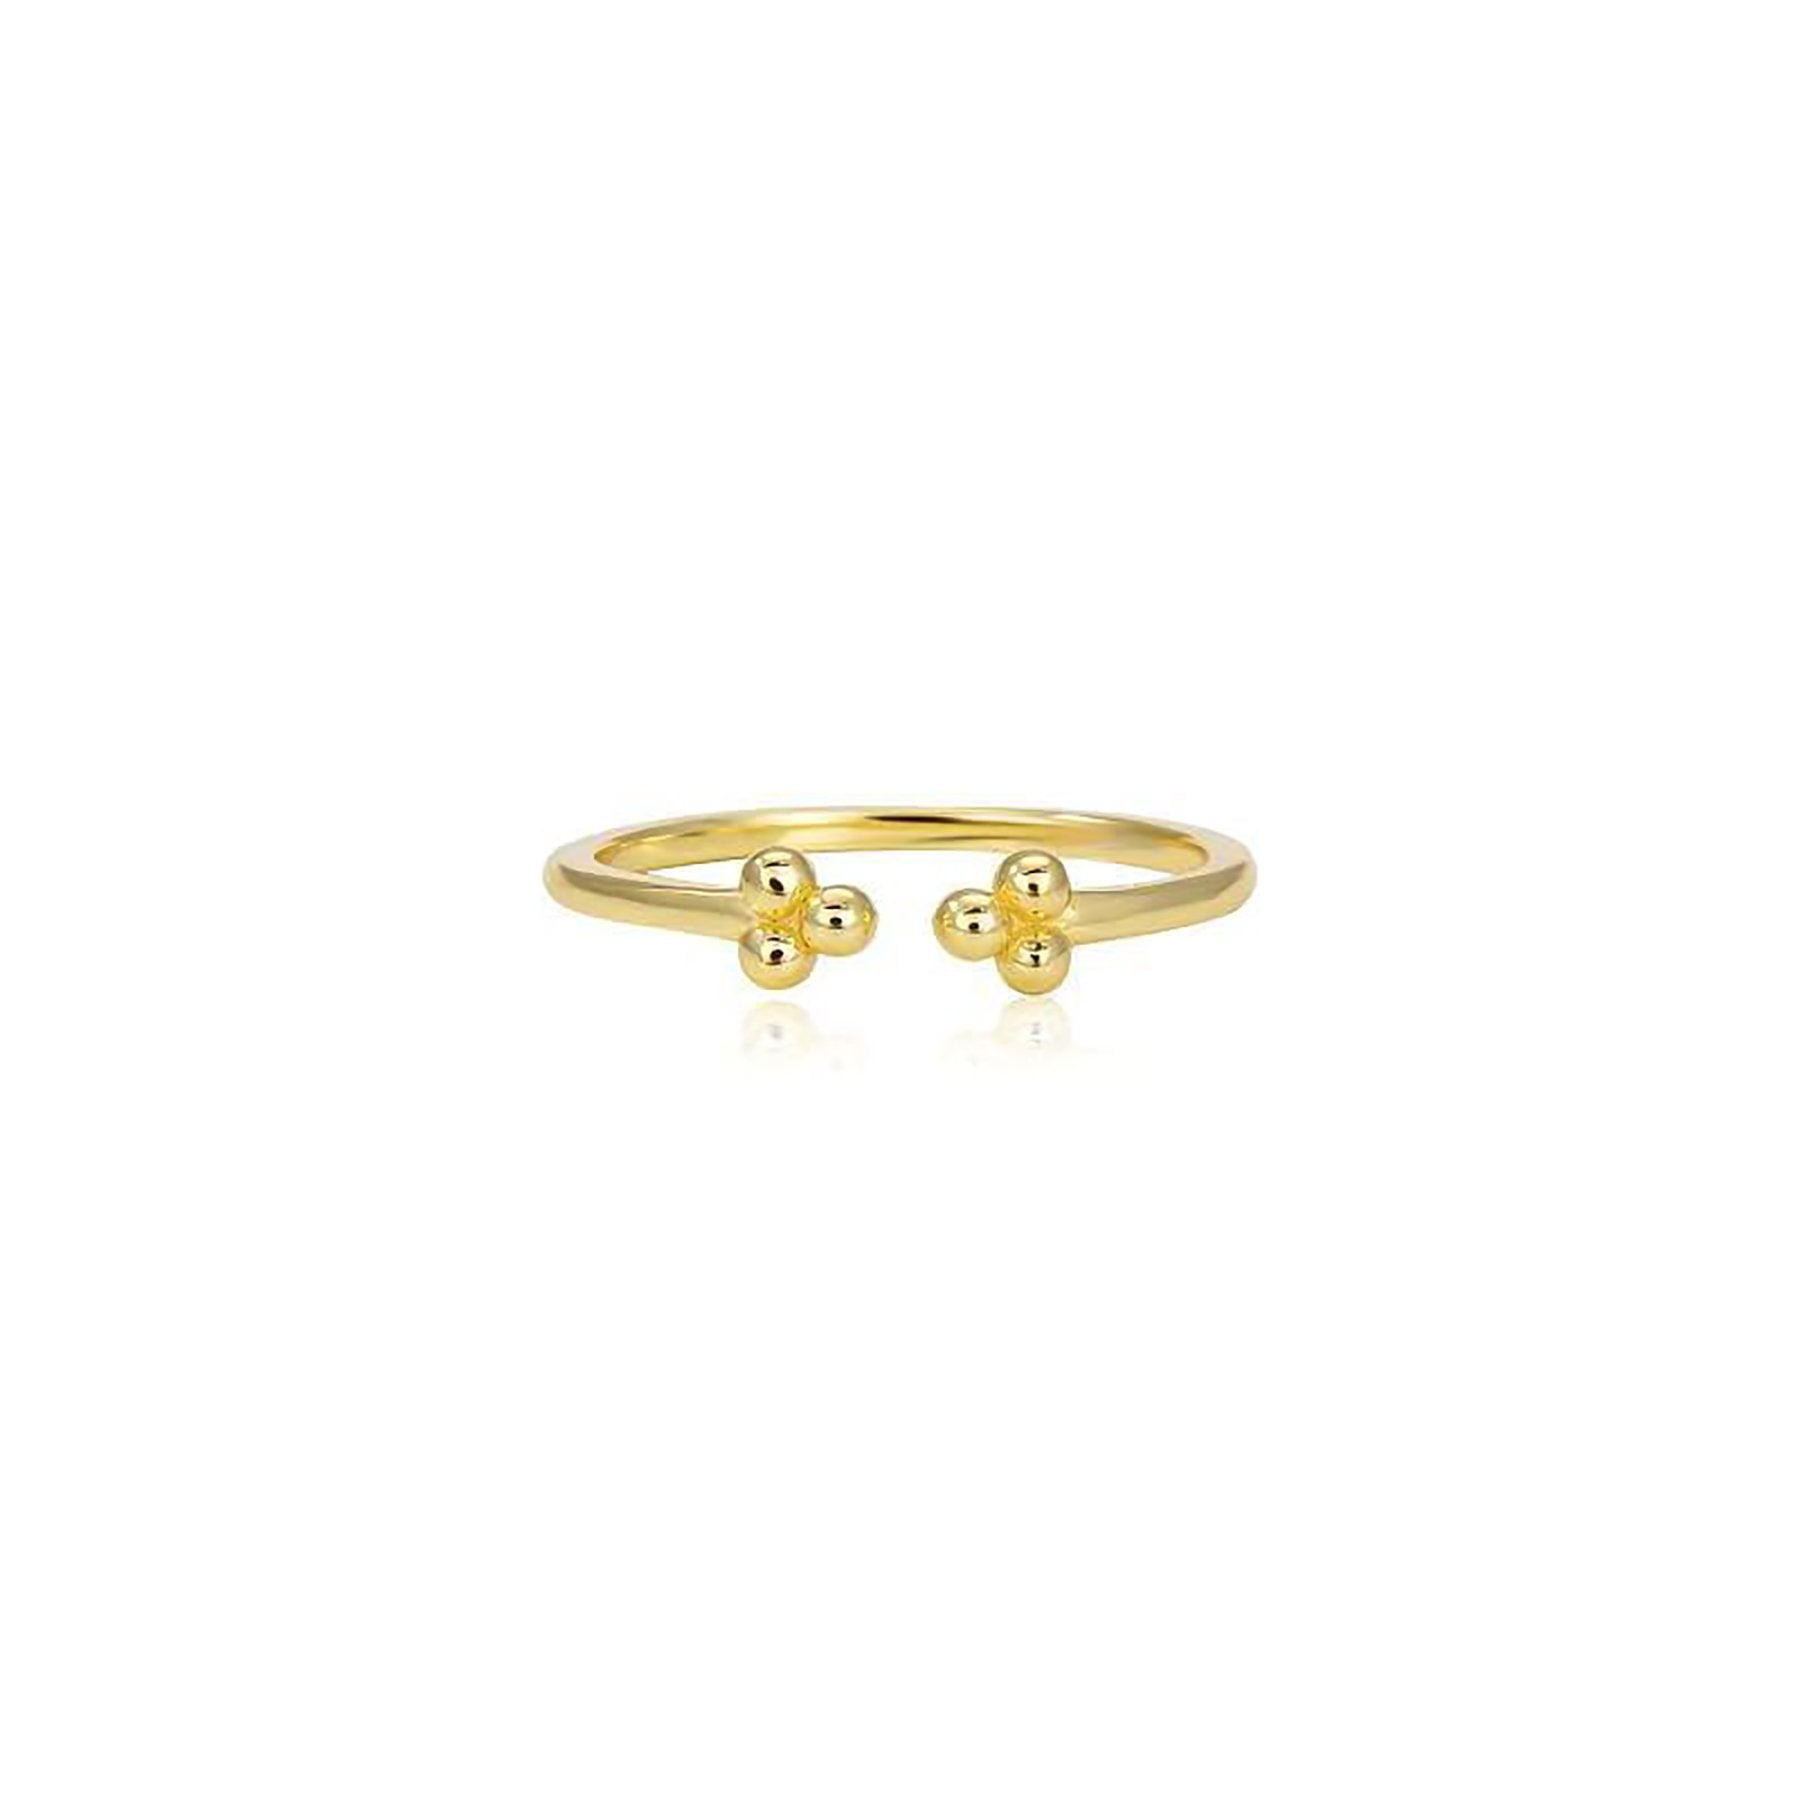 OPEN RING WITH 3 CIRCLES GOLD PLATED